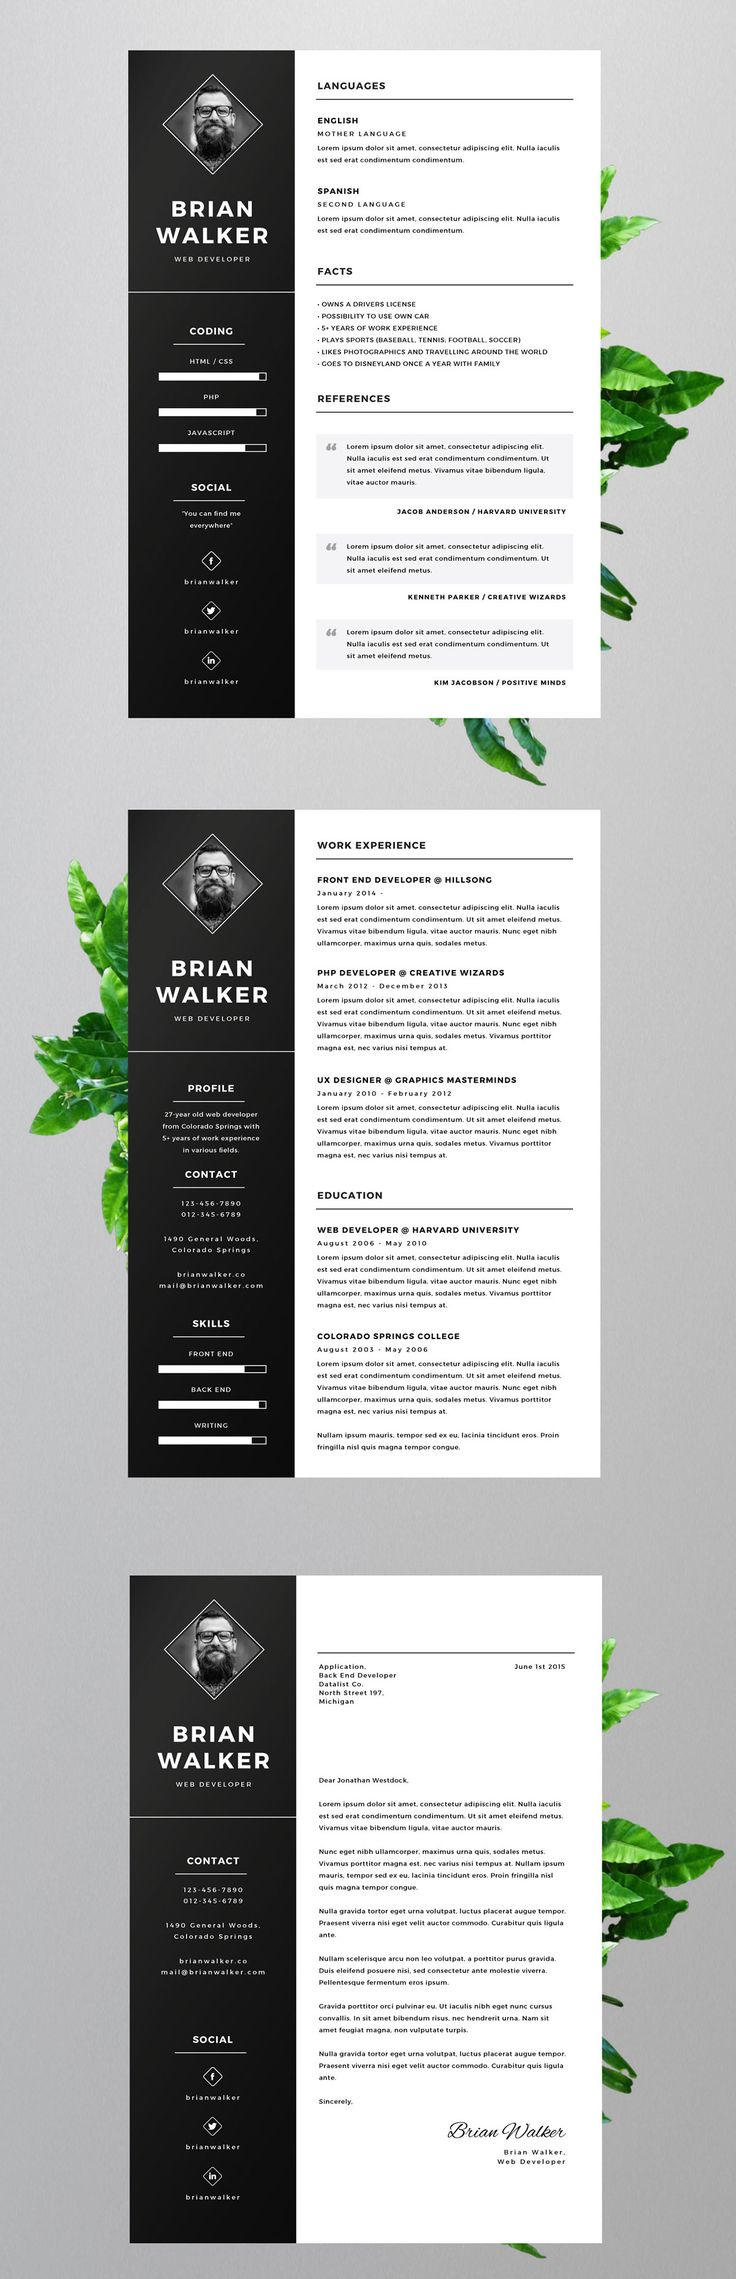 making a resume for free%0A Free resume template for Microsoft Word  Adobe Photoshop and Adobe  Illustrator  Free for personal